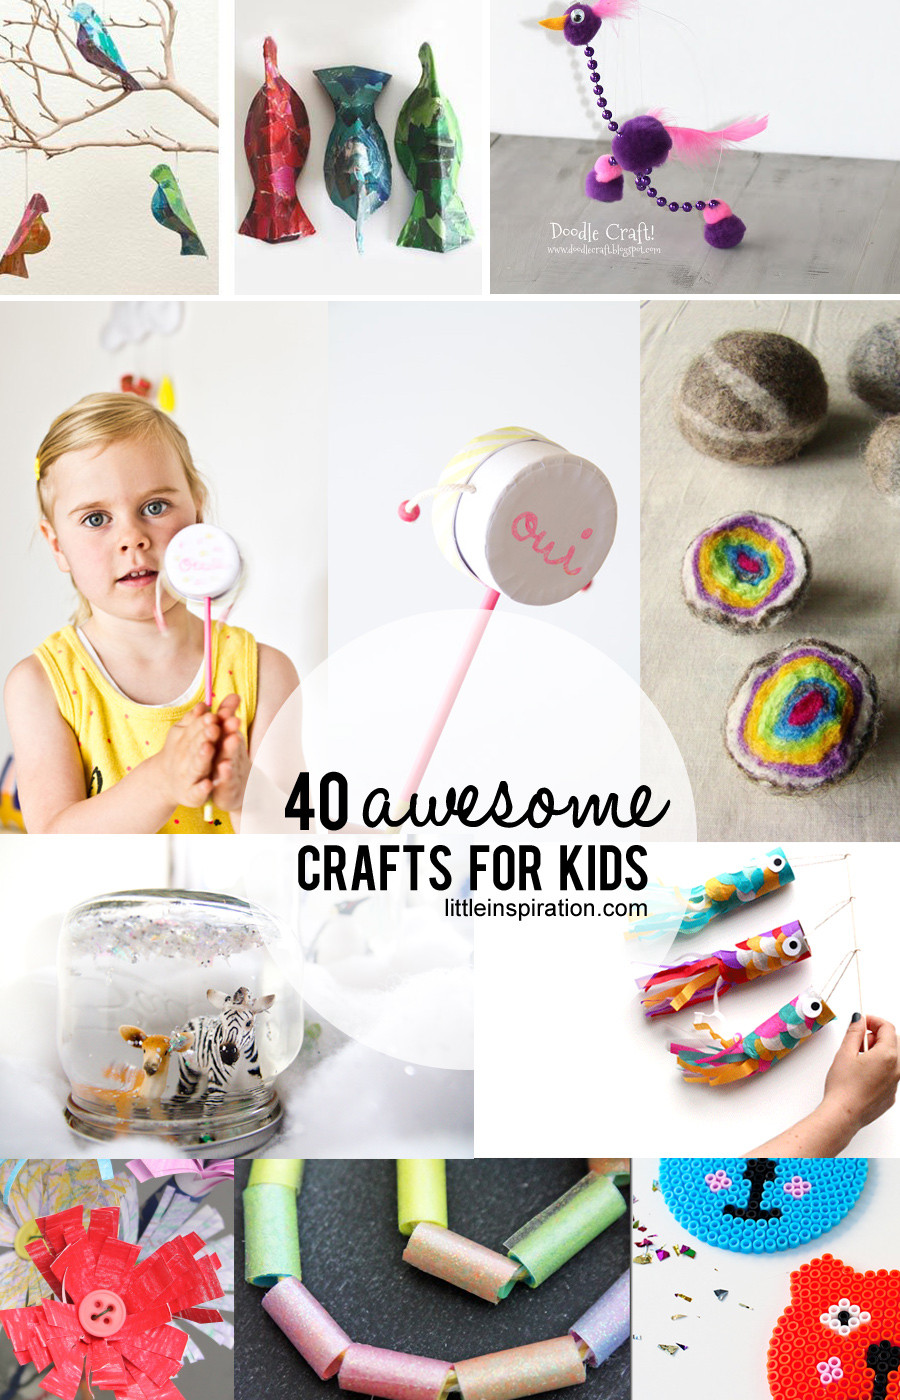 Crafts For Little Kids  40 Awesome Crafts for Kids Little Inspiration